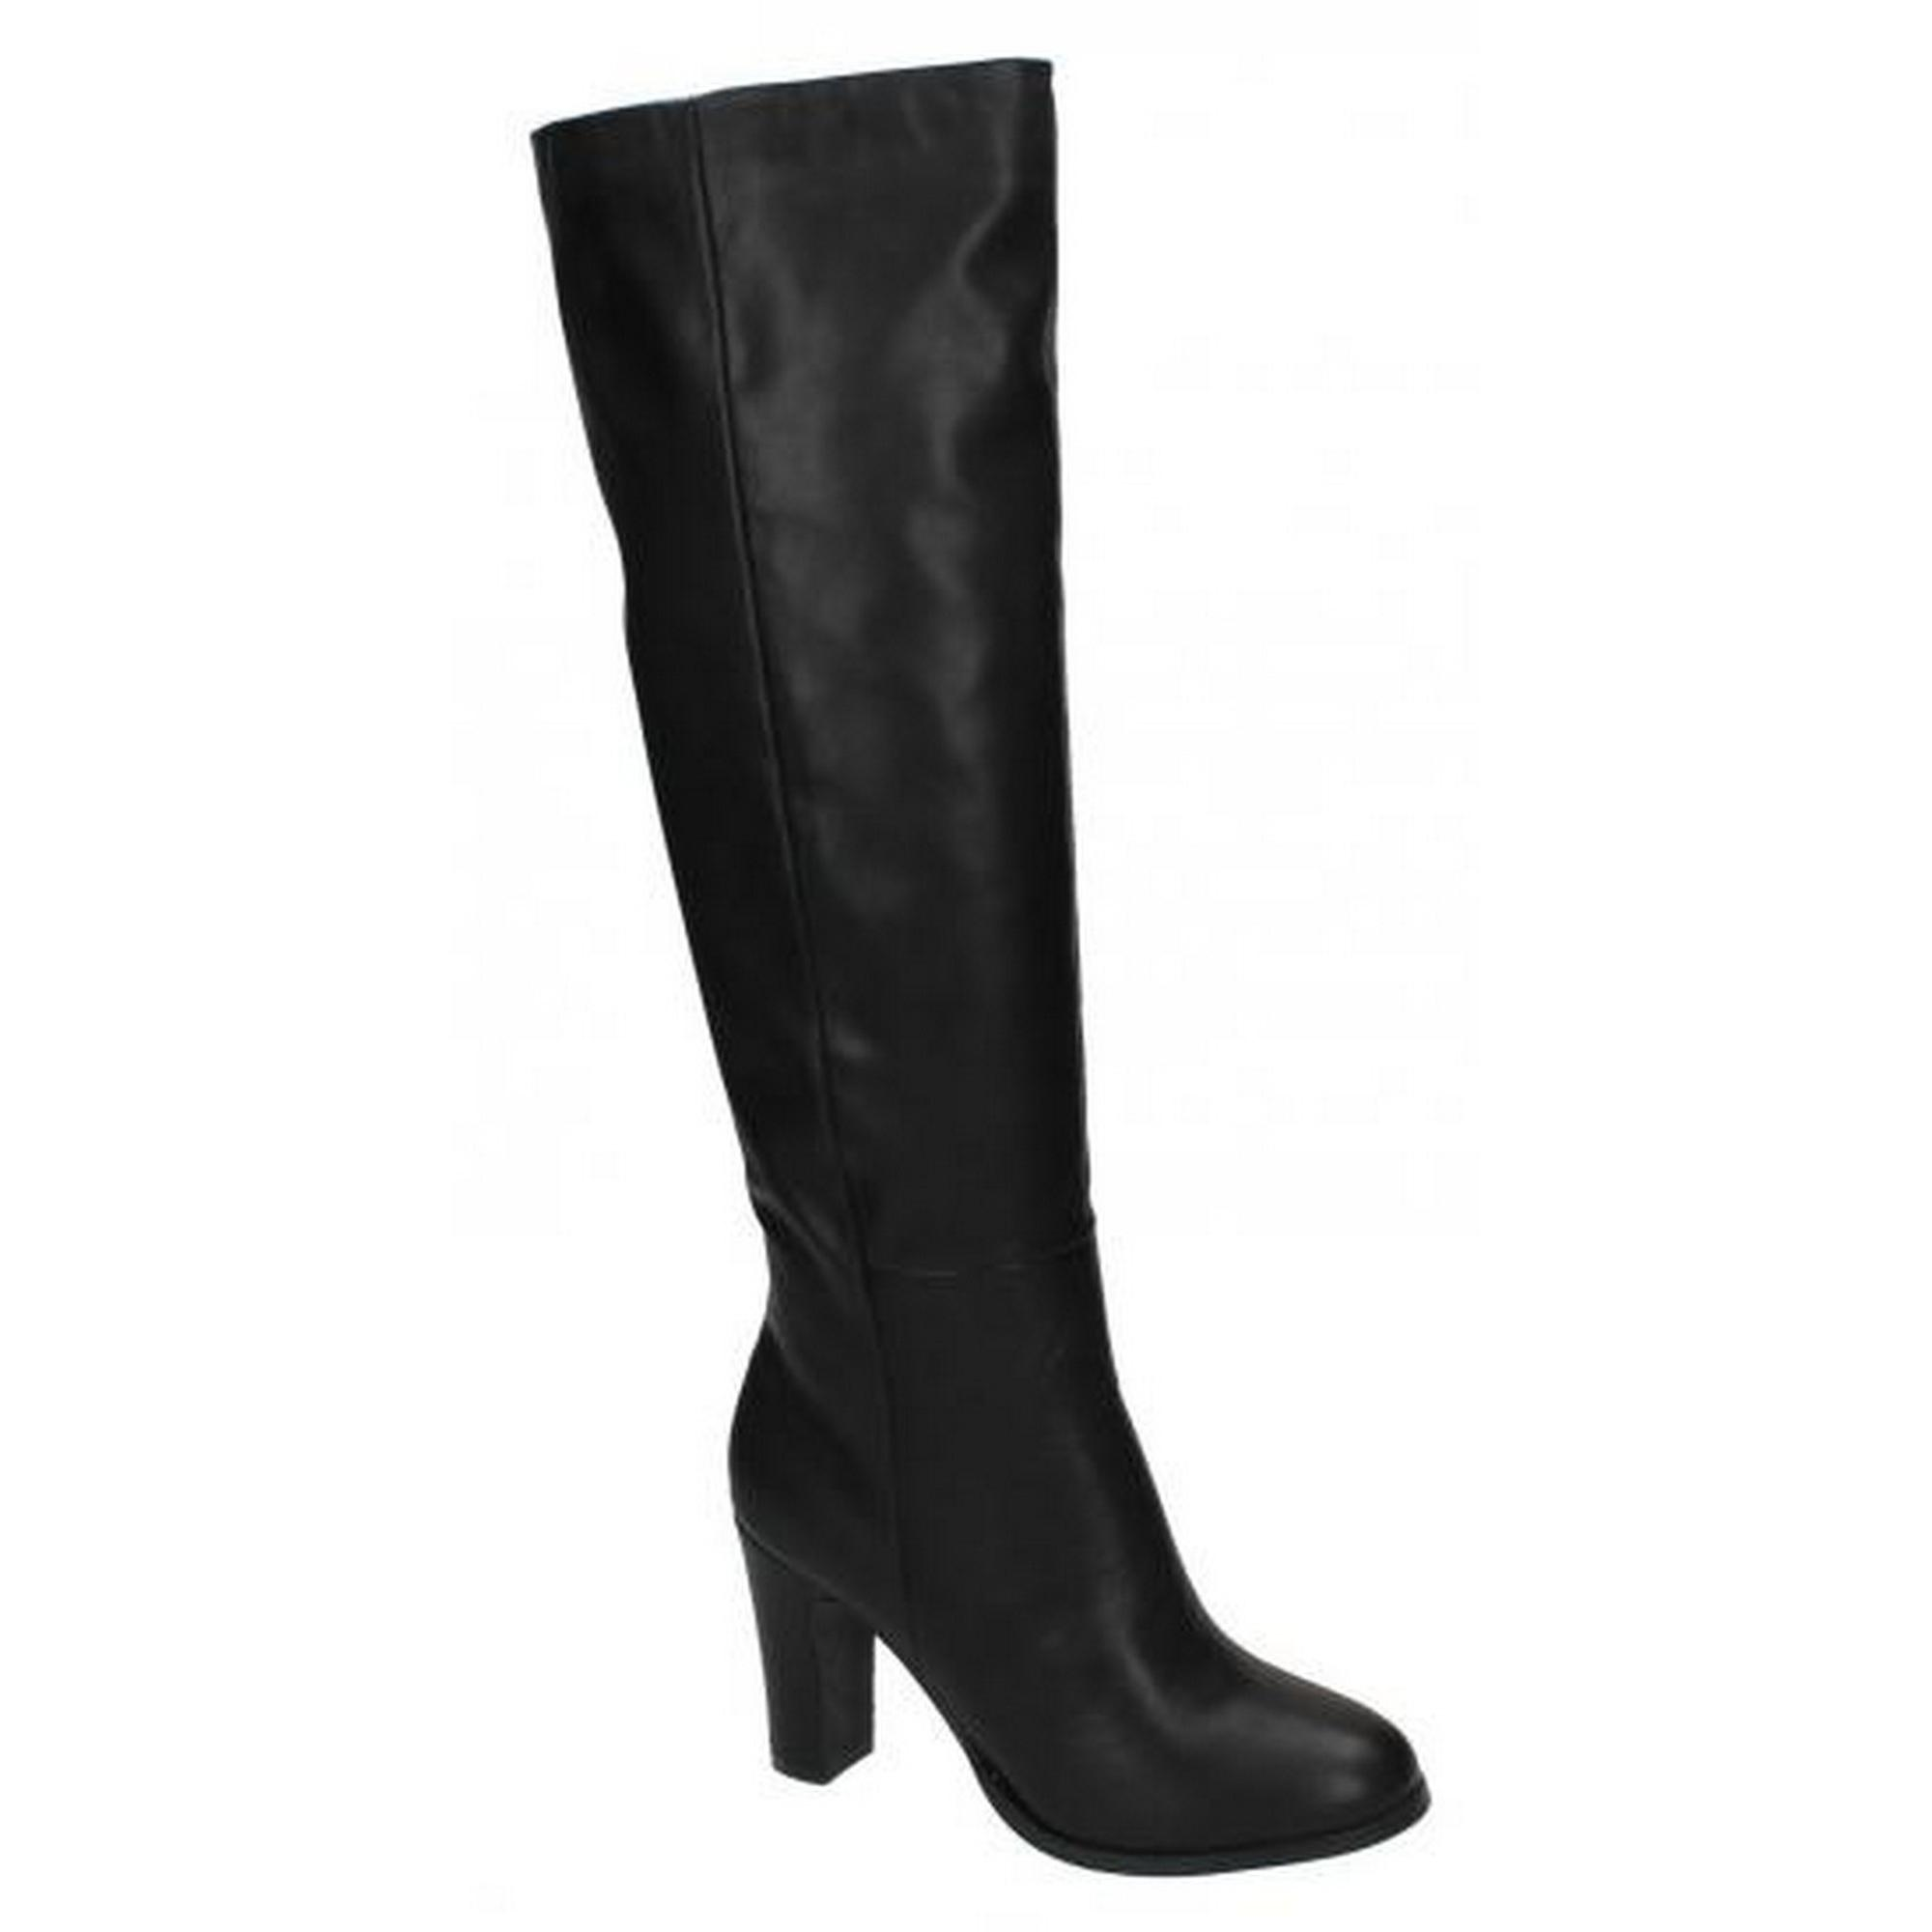 Boots Heeled Womens Knee On High Spot Ladies Y8xAq4